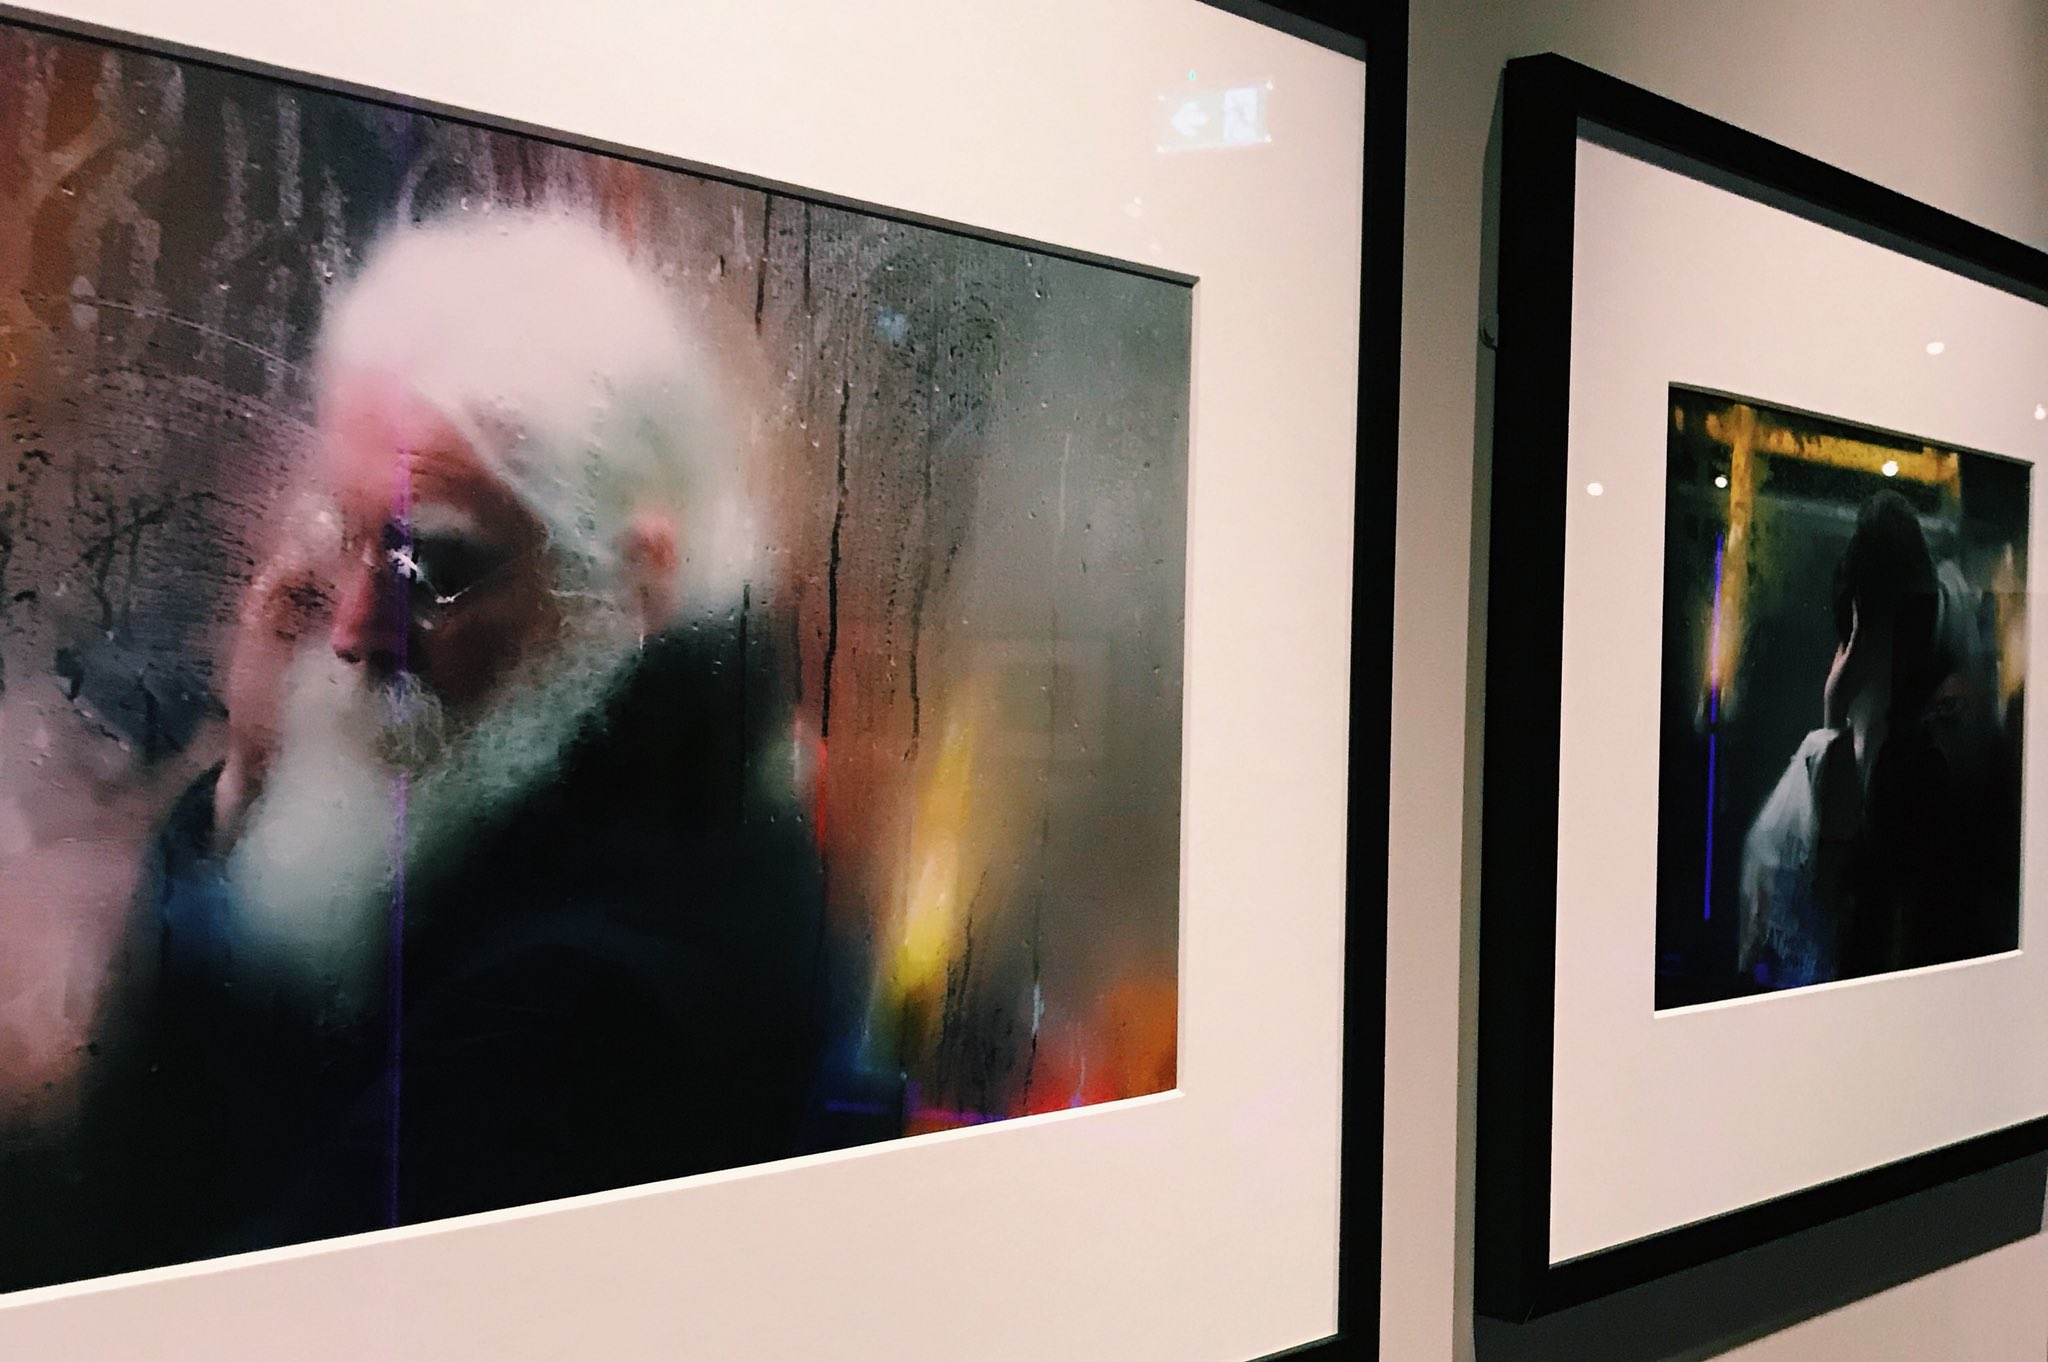 AND was chuffed to see @NickTurpin's On The Night Bus included too - beautiful Saul Leiter-esque painterly stuff. Such a treat! https://t.co/jKYj3oRLN8